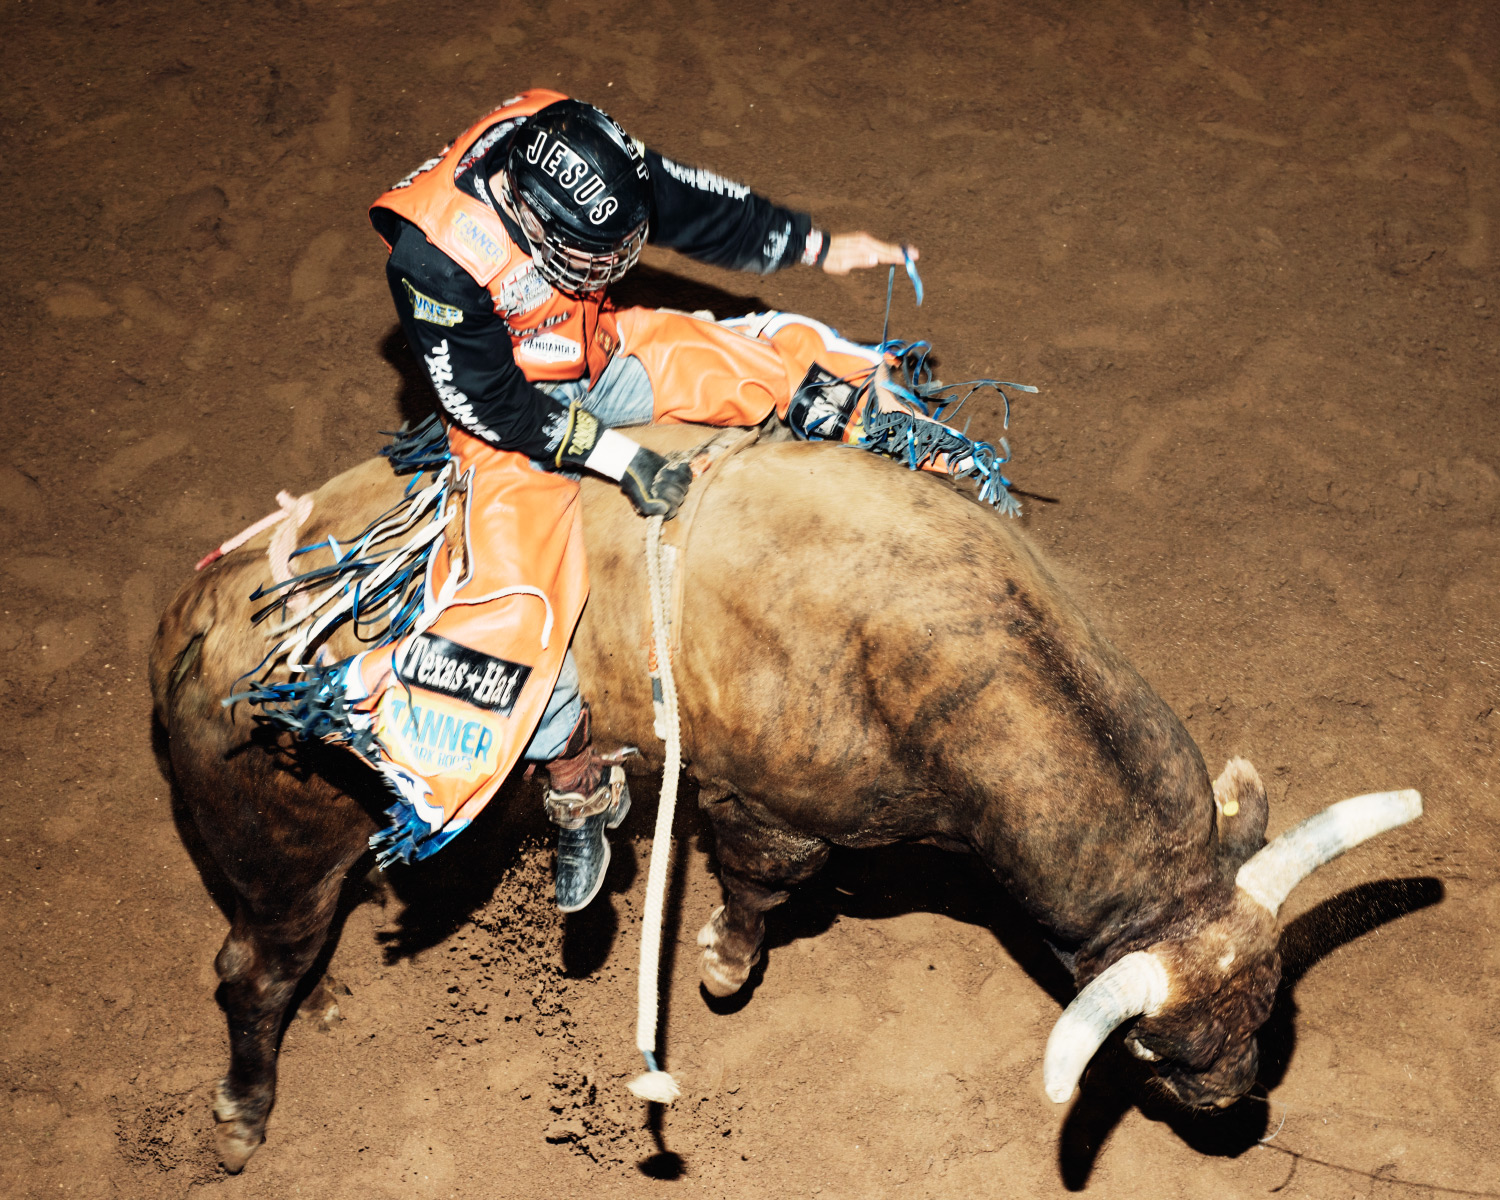 Alexander Cardozo during one his rides on Sat Oct 3rd at the Tucson Convention Center in Tucson, AZ